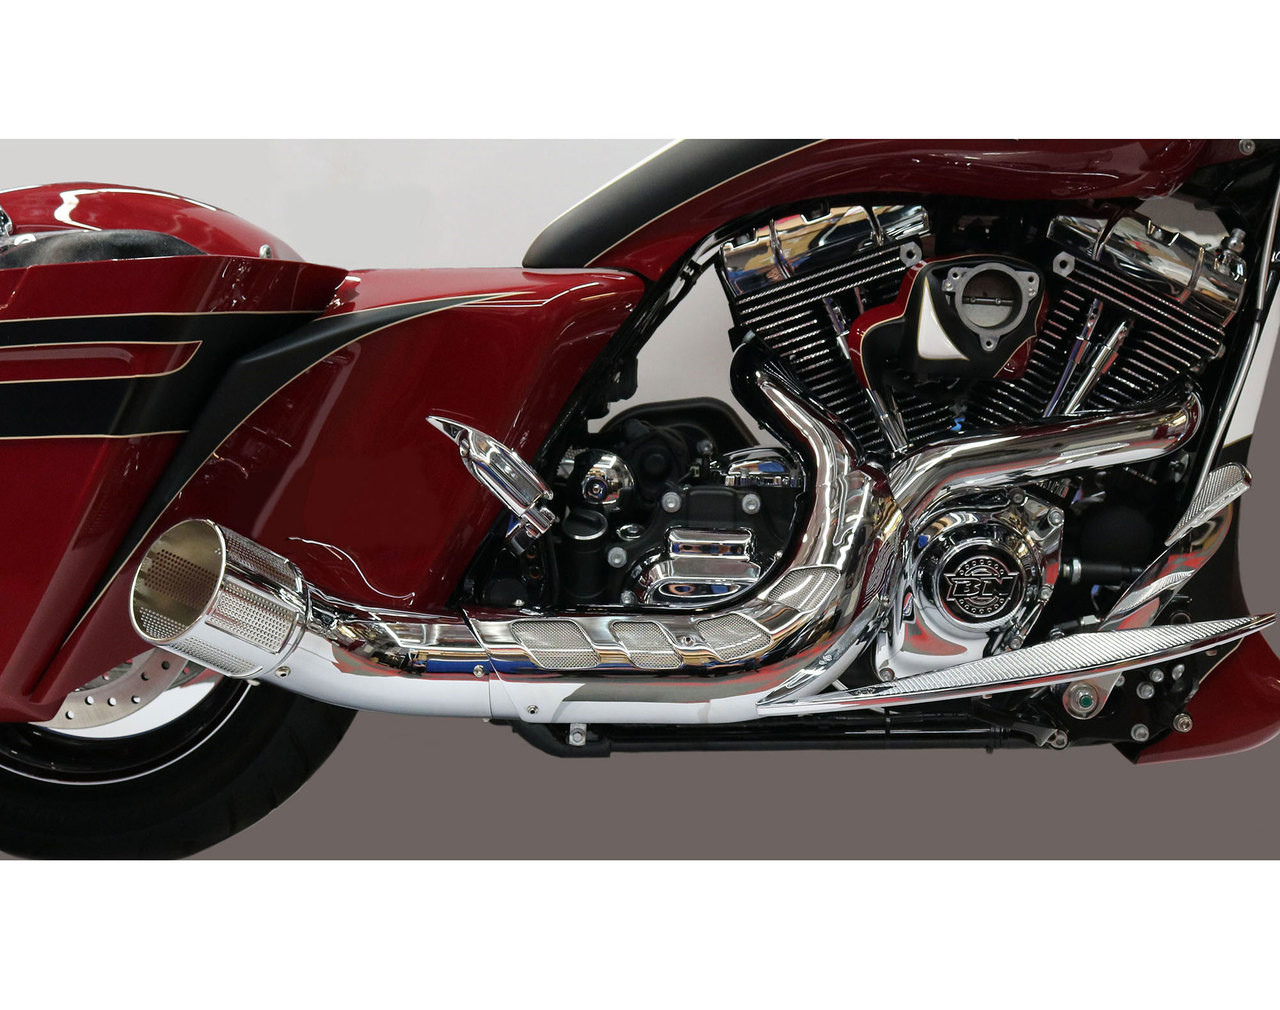 2 into 1 Exhaust for Harley Davidson Touring